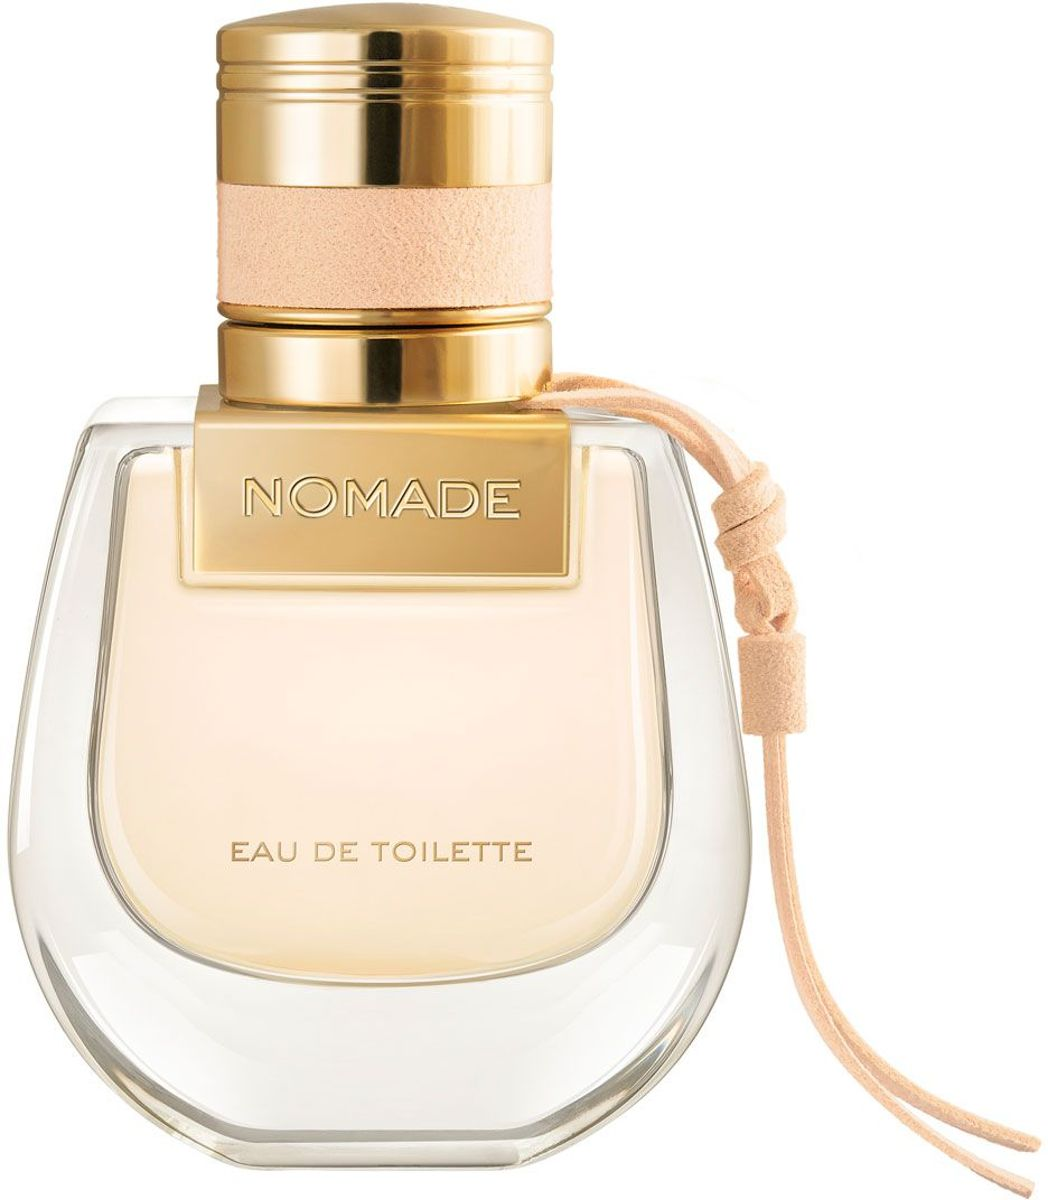 Nuxe Chloé Nomade Eau De Toilette Spray 30ml